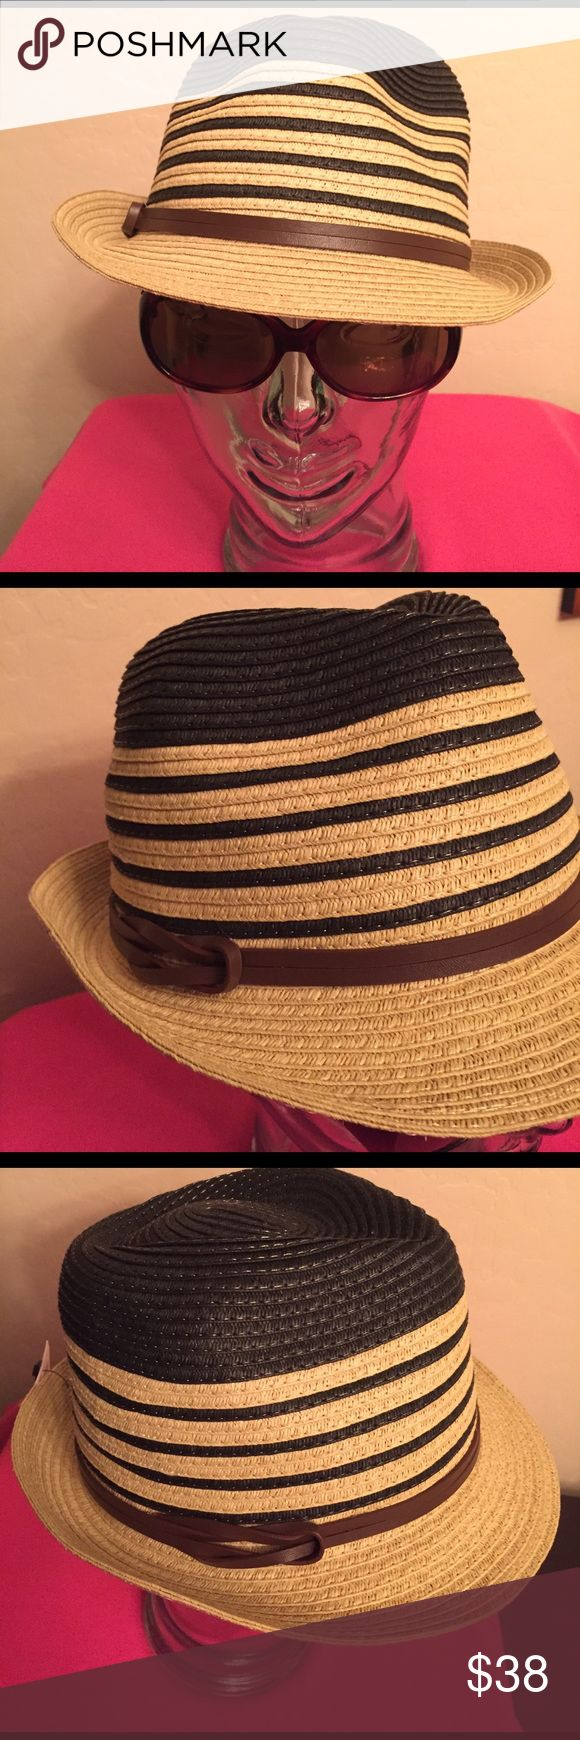 🆕 Calvin Klein Straw Fedora Authentic Calvin Klein Straw Fedora. Natural Tan with Black Crown & Bands. Faux Brown Leather Strap that Wraps, then Loops on the Right Side. Adjustable Drawstring is inside Black & White Lining; see Last Pic. 87% Paper/13% Polyester. Brand New. Excellent Condition. No Trades. Calvin Klein Accessories Hats